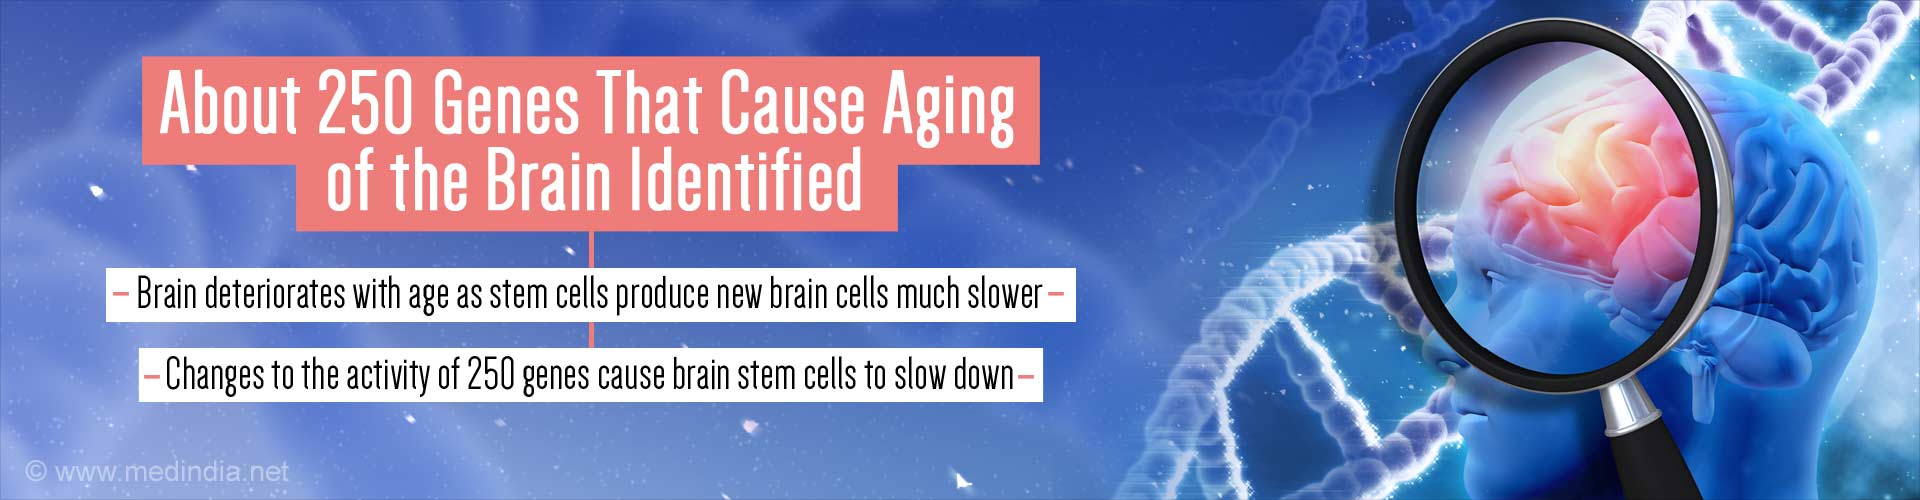 about 250 genes that cause aging of the brain identified - brain deteriorates with age as stem cells produce new brain cells much slower - changes to the activity of 250 genes cause brani stem cells to slow down